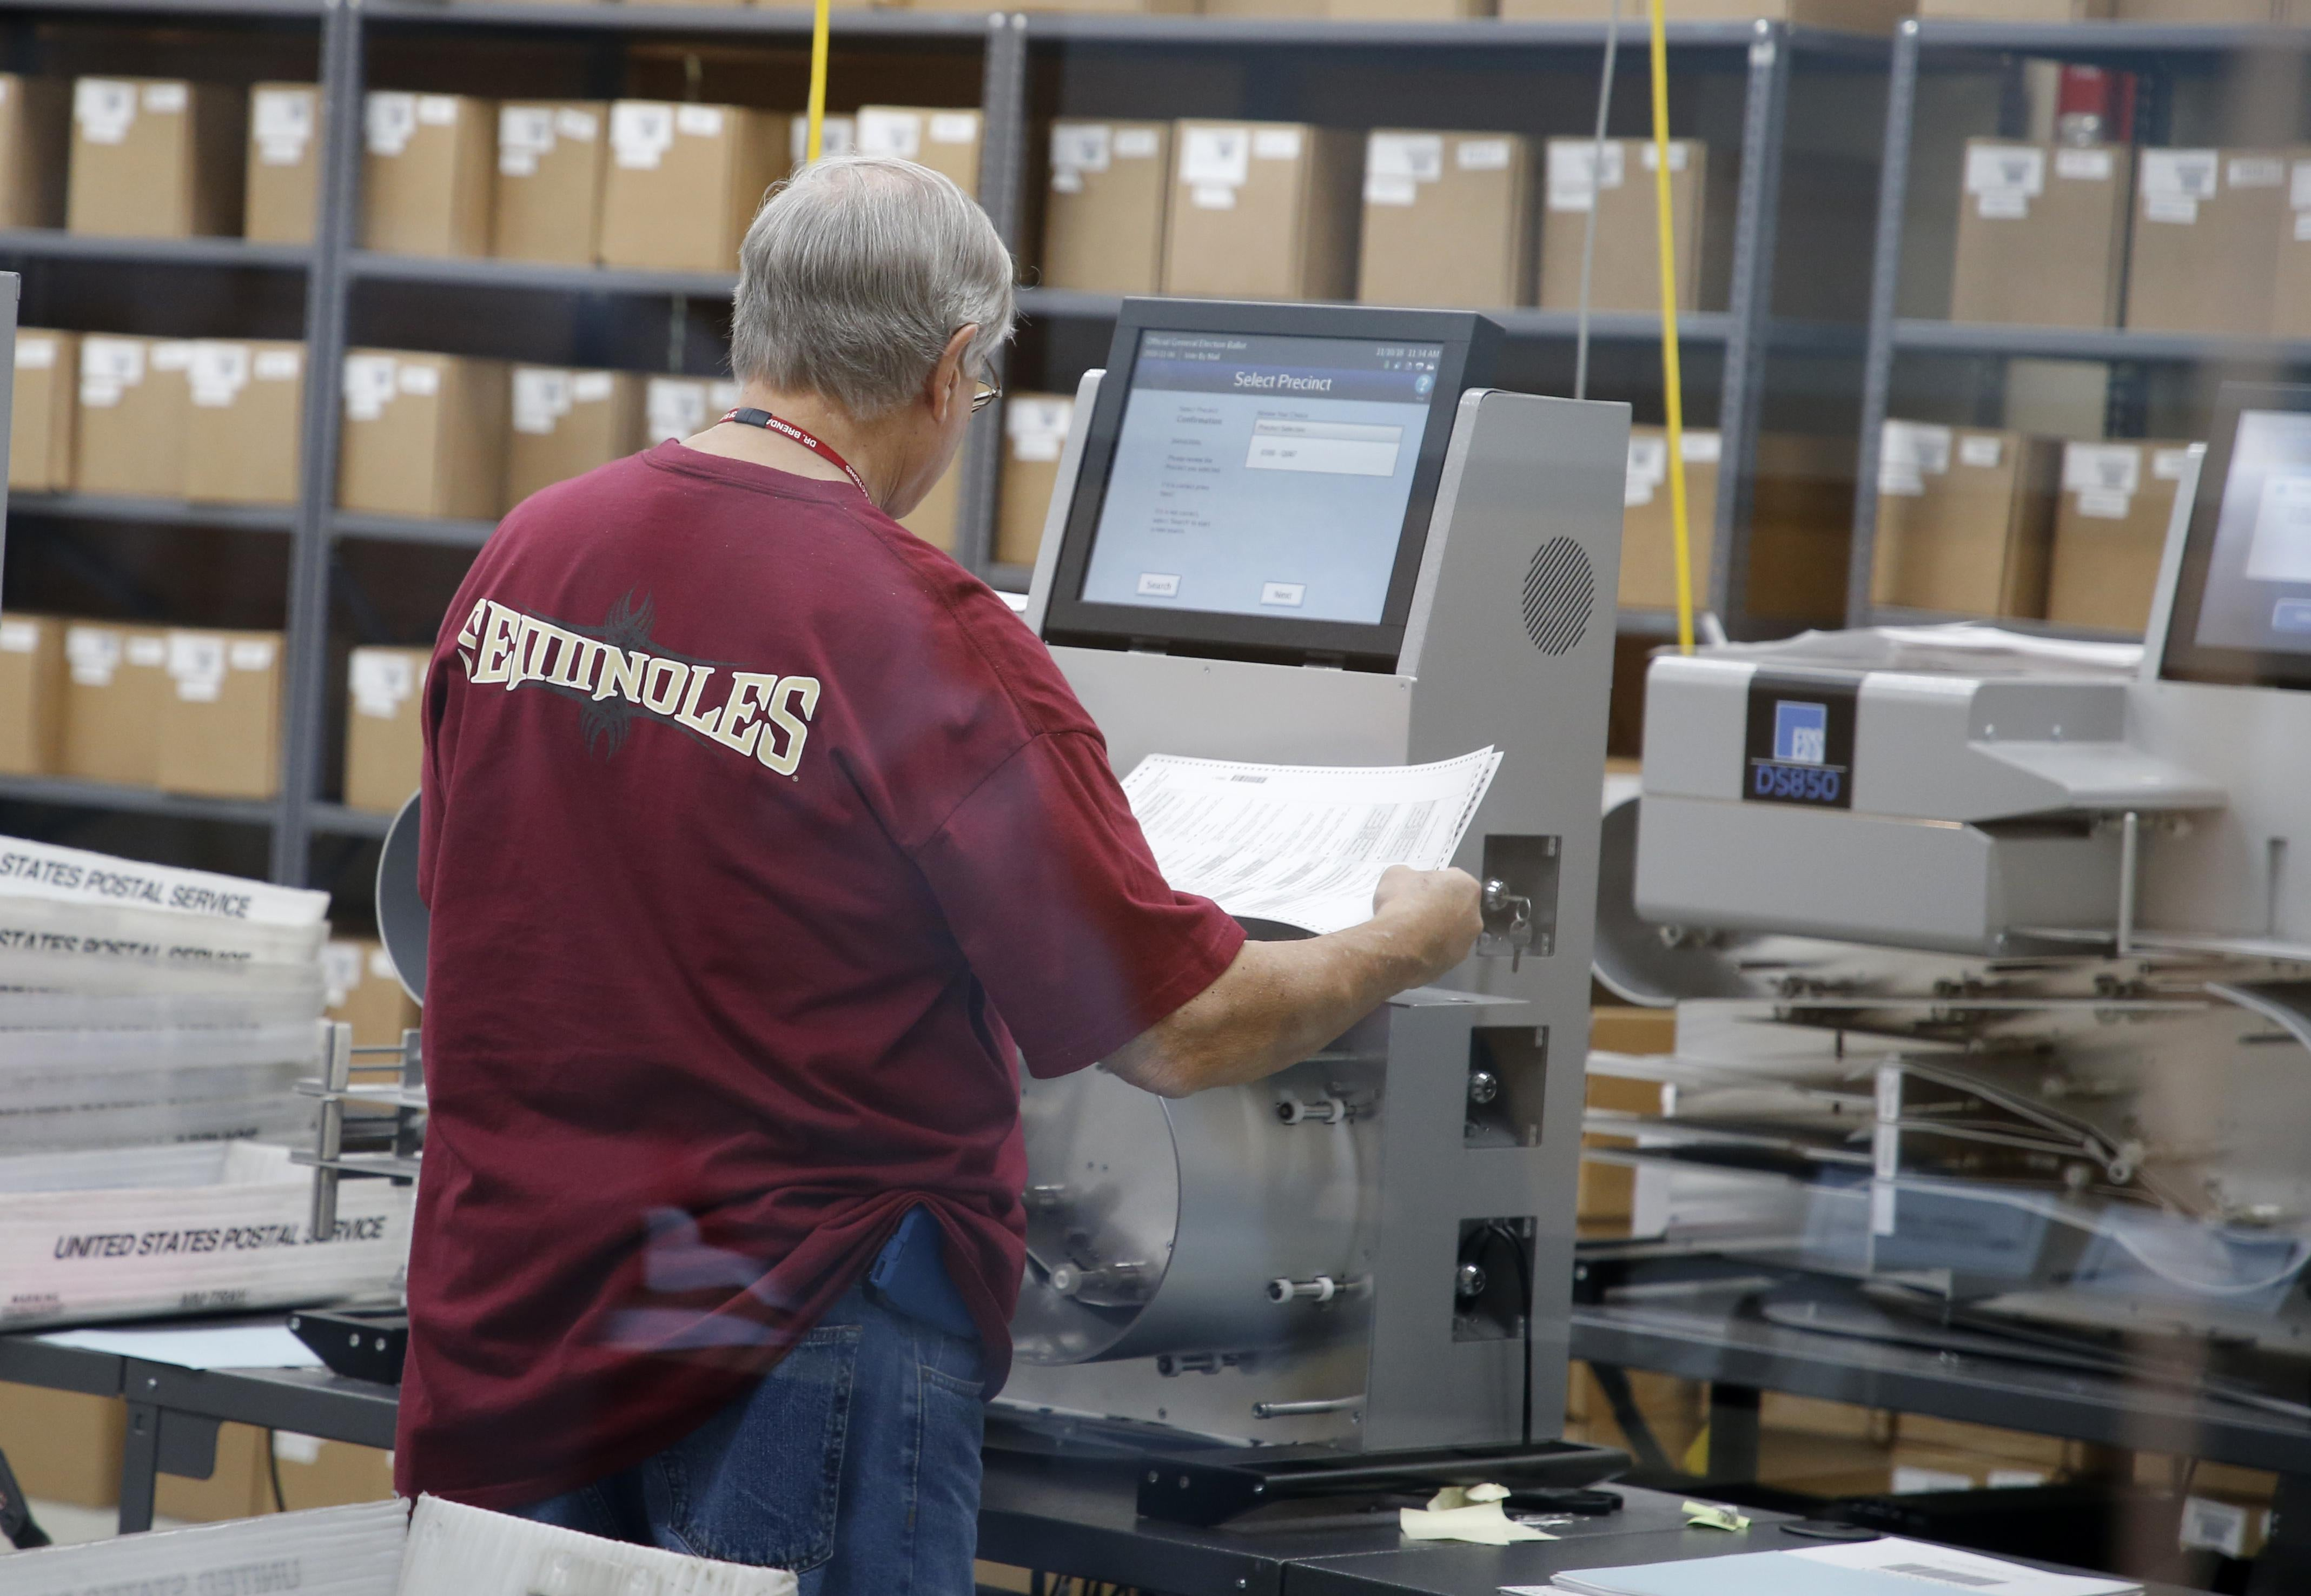 A worker feeds ballots into a tabulation machine, with many cardboard boxes on the shelves in the background.